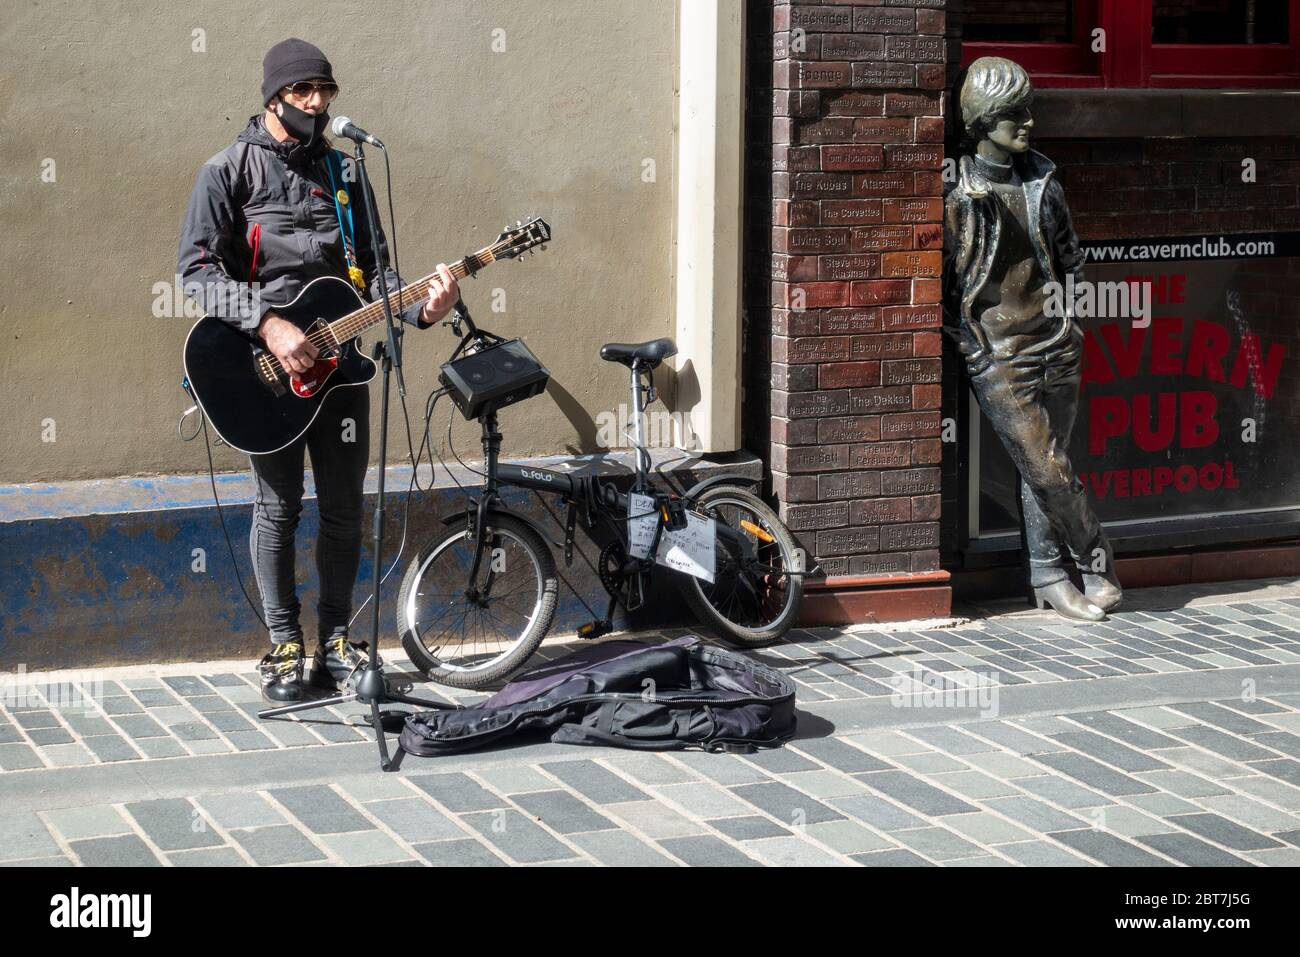 a-busker-with-a-protective-face-mask-on-